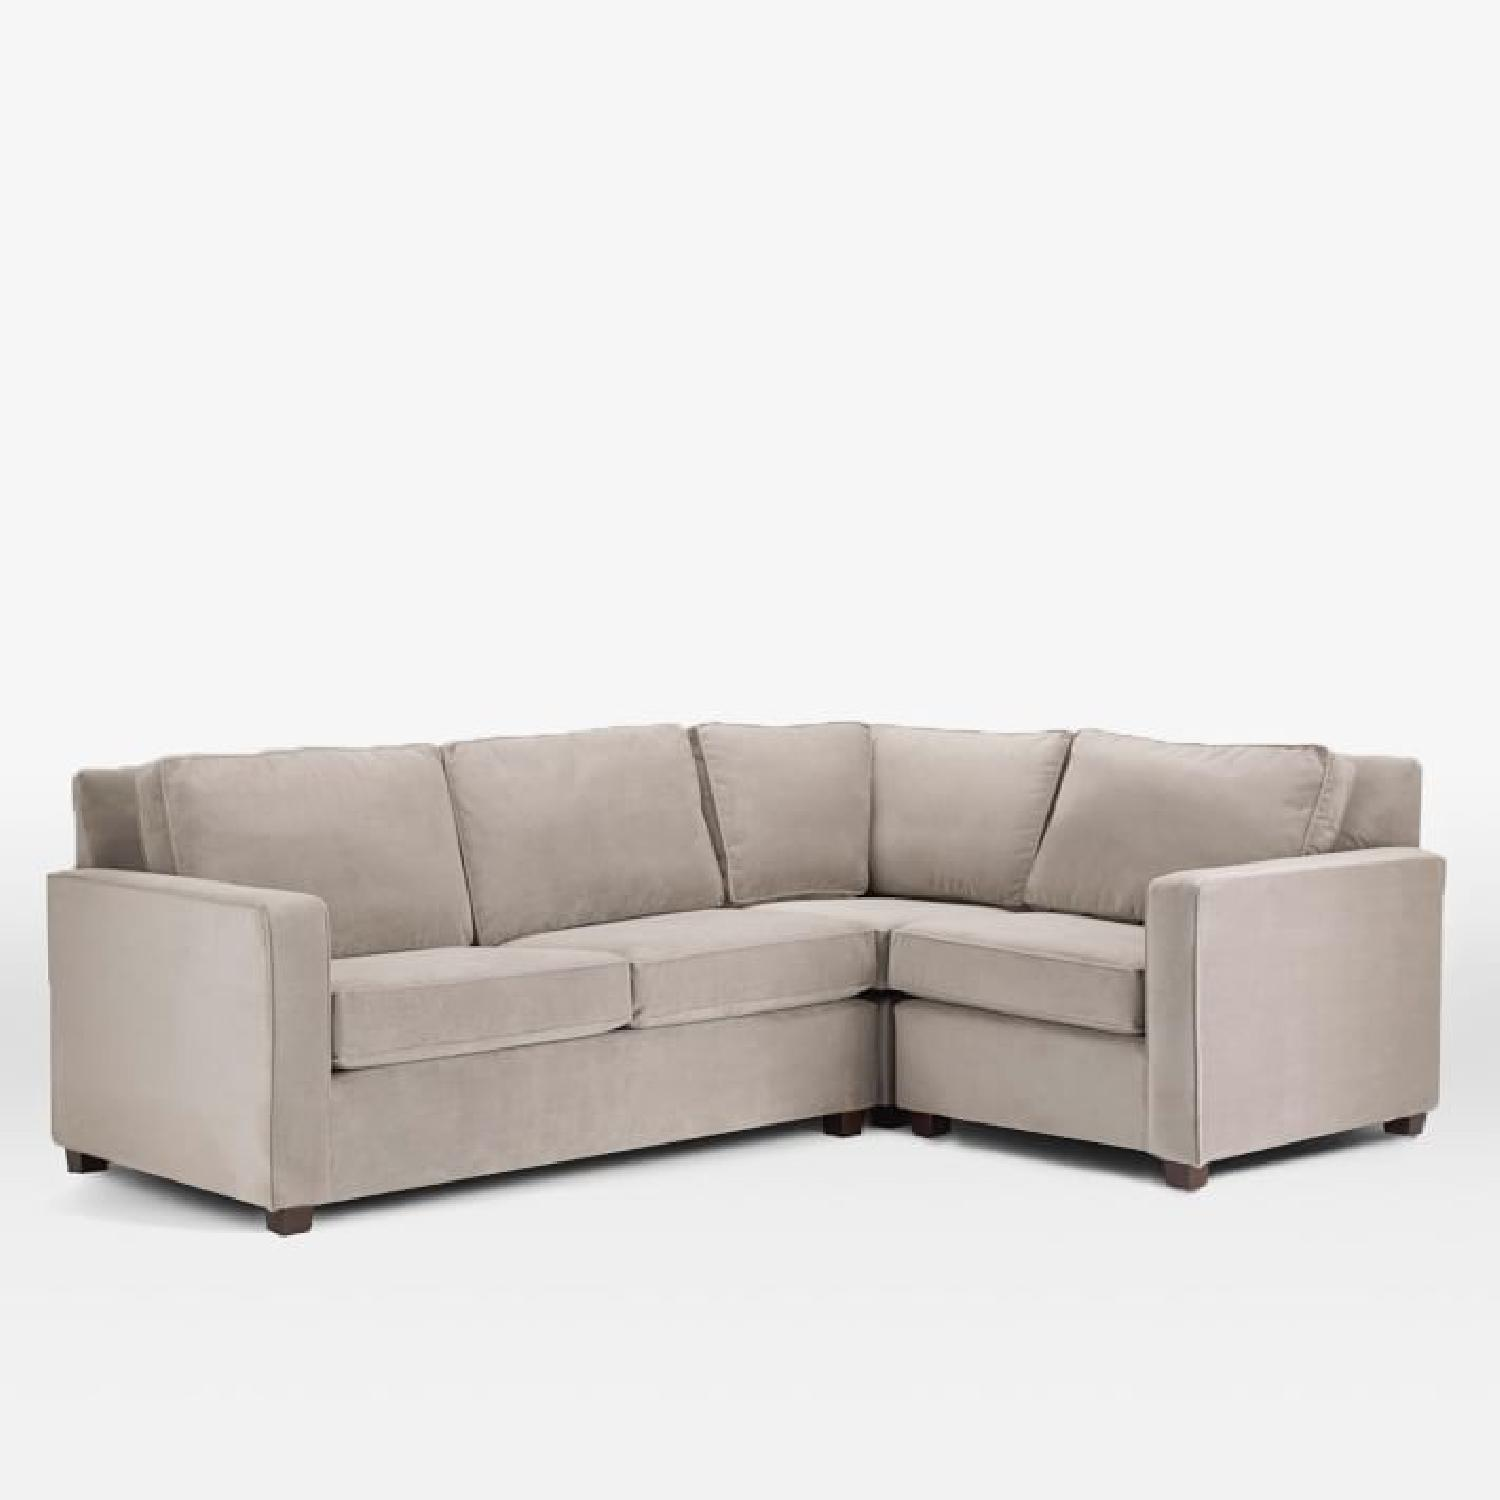 am umfhanna set and piece fm with amfm sectional cd p aux stereo brown sofa